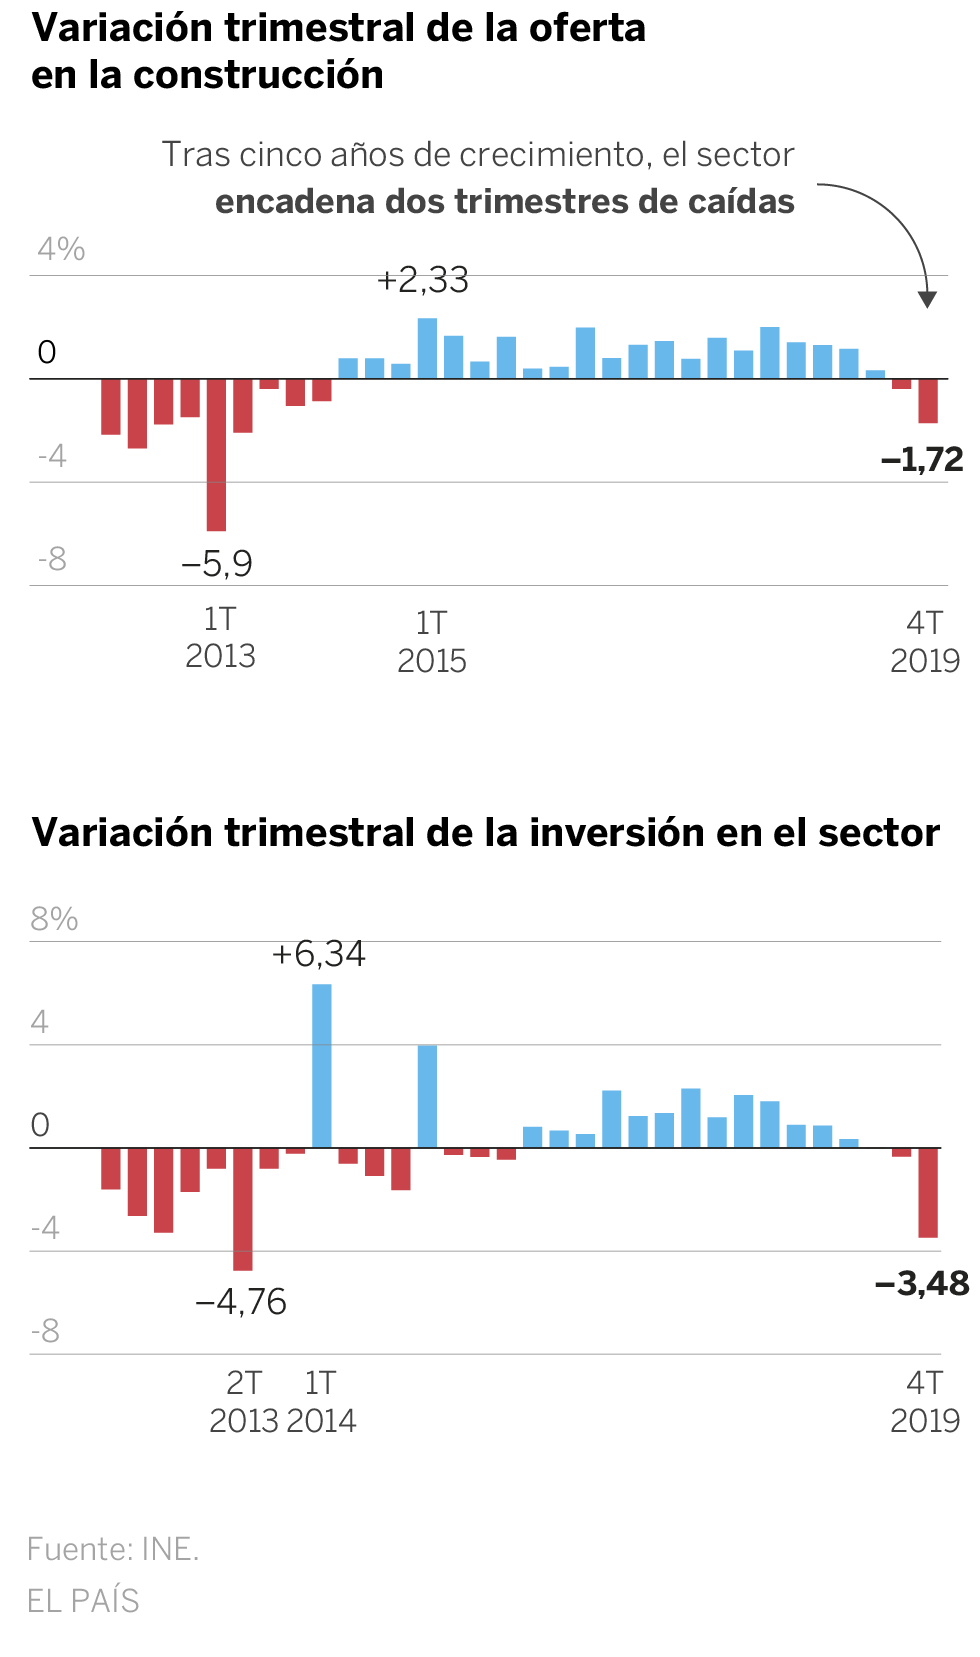 Construction goes into recession after two quarters of fall in the GDP of 2019